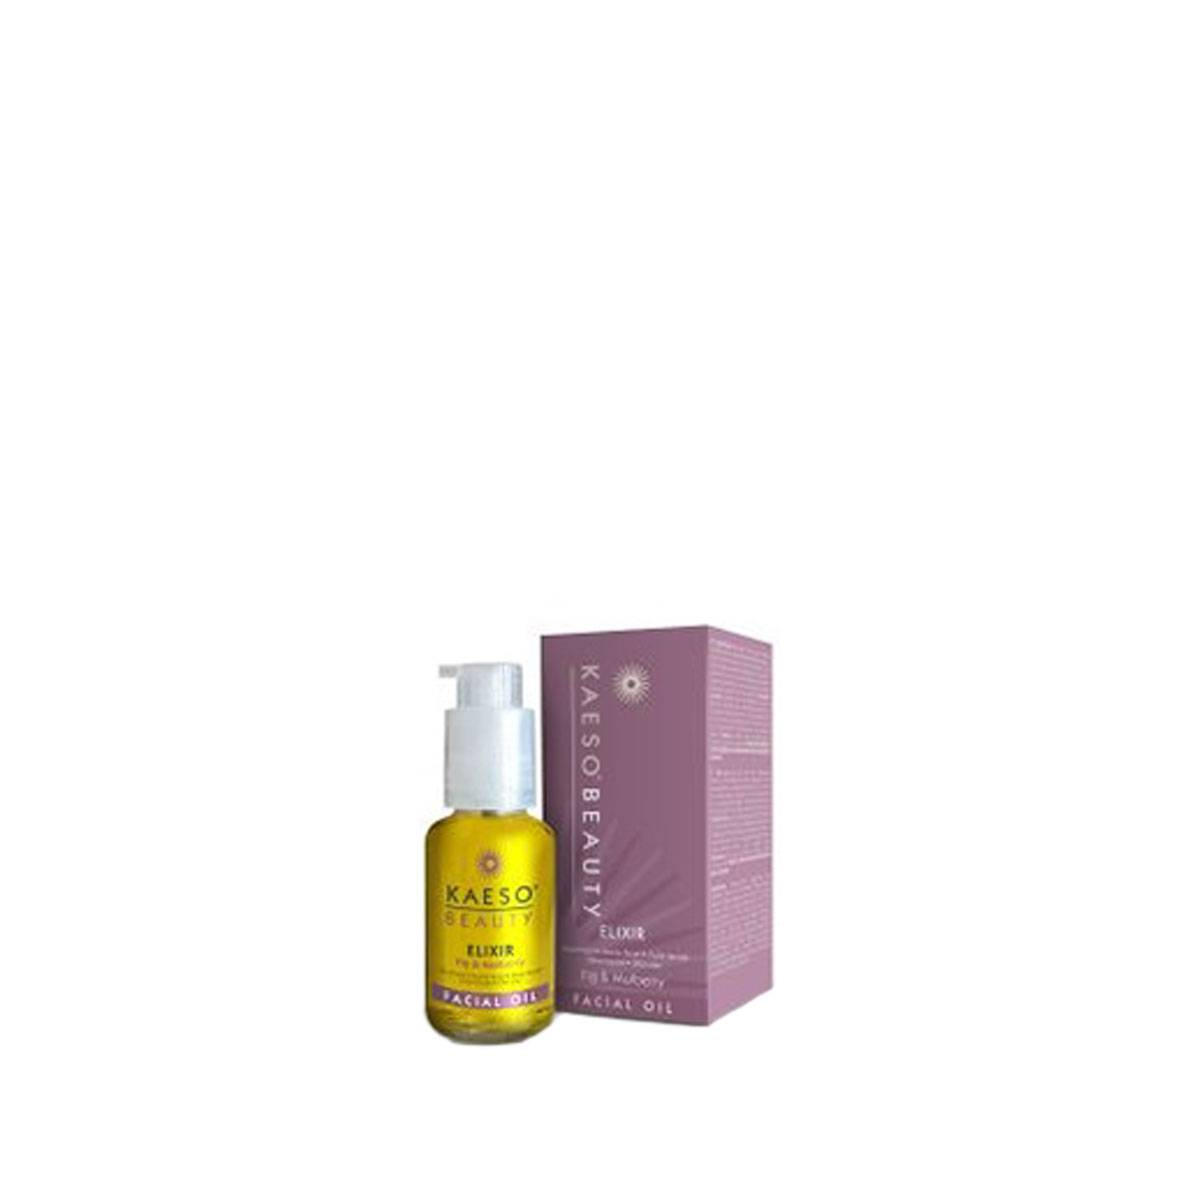 Elixir Facial Oil 50ml*cat